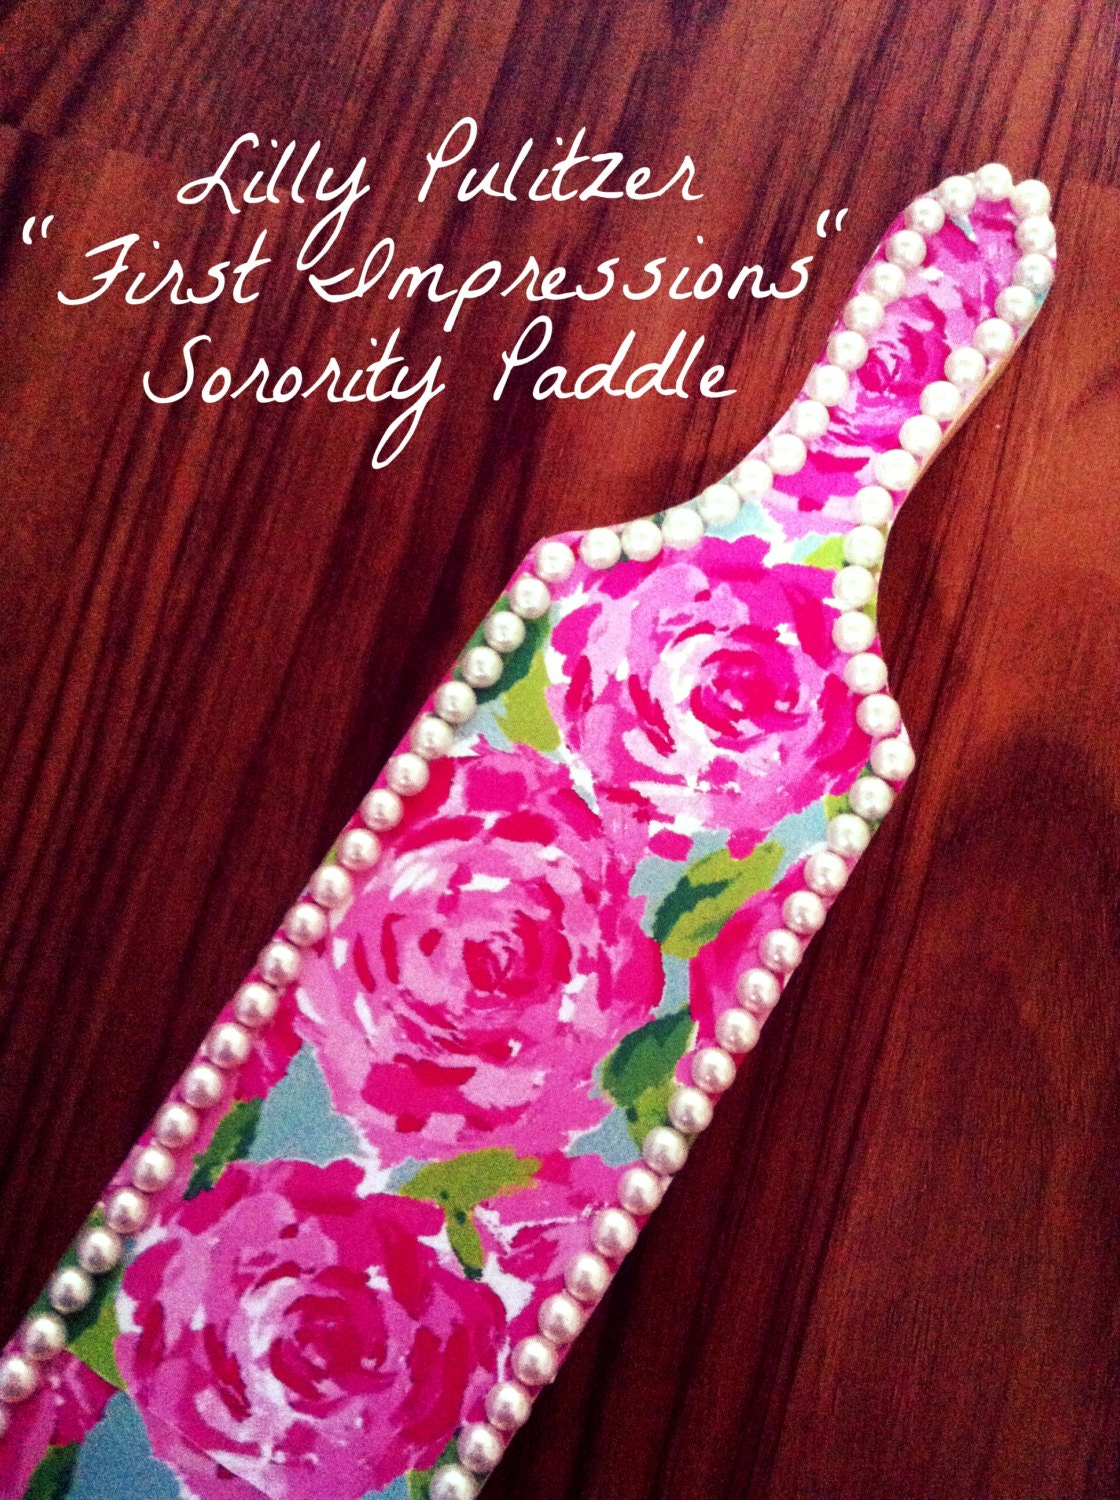 First Impressions Lilly Pulitzer Lilly Pulitzer First